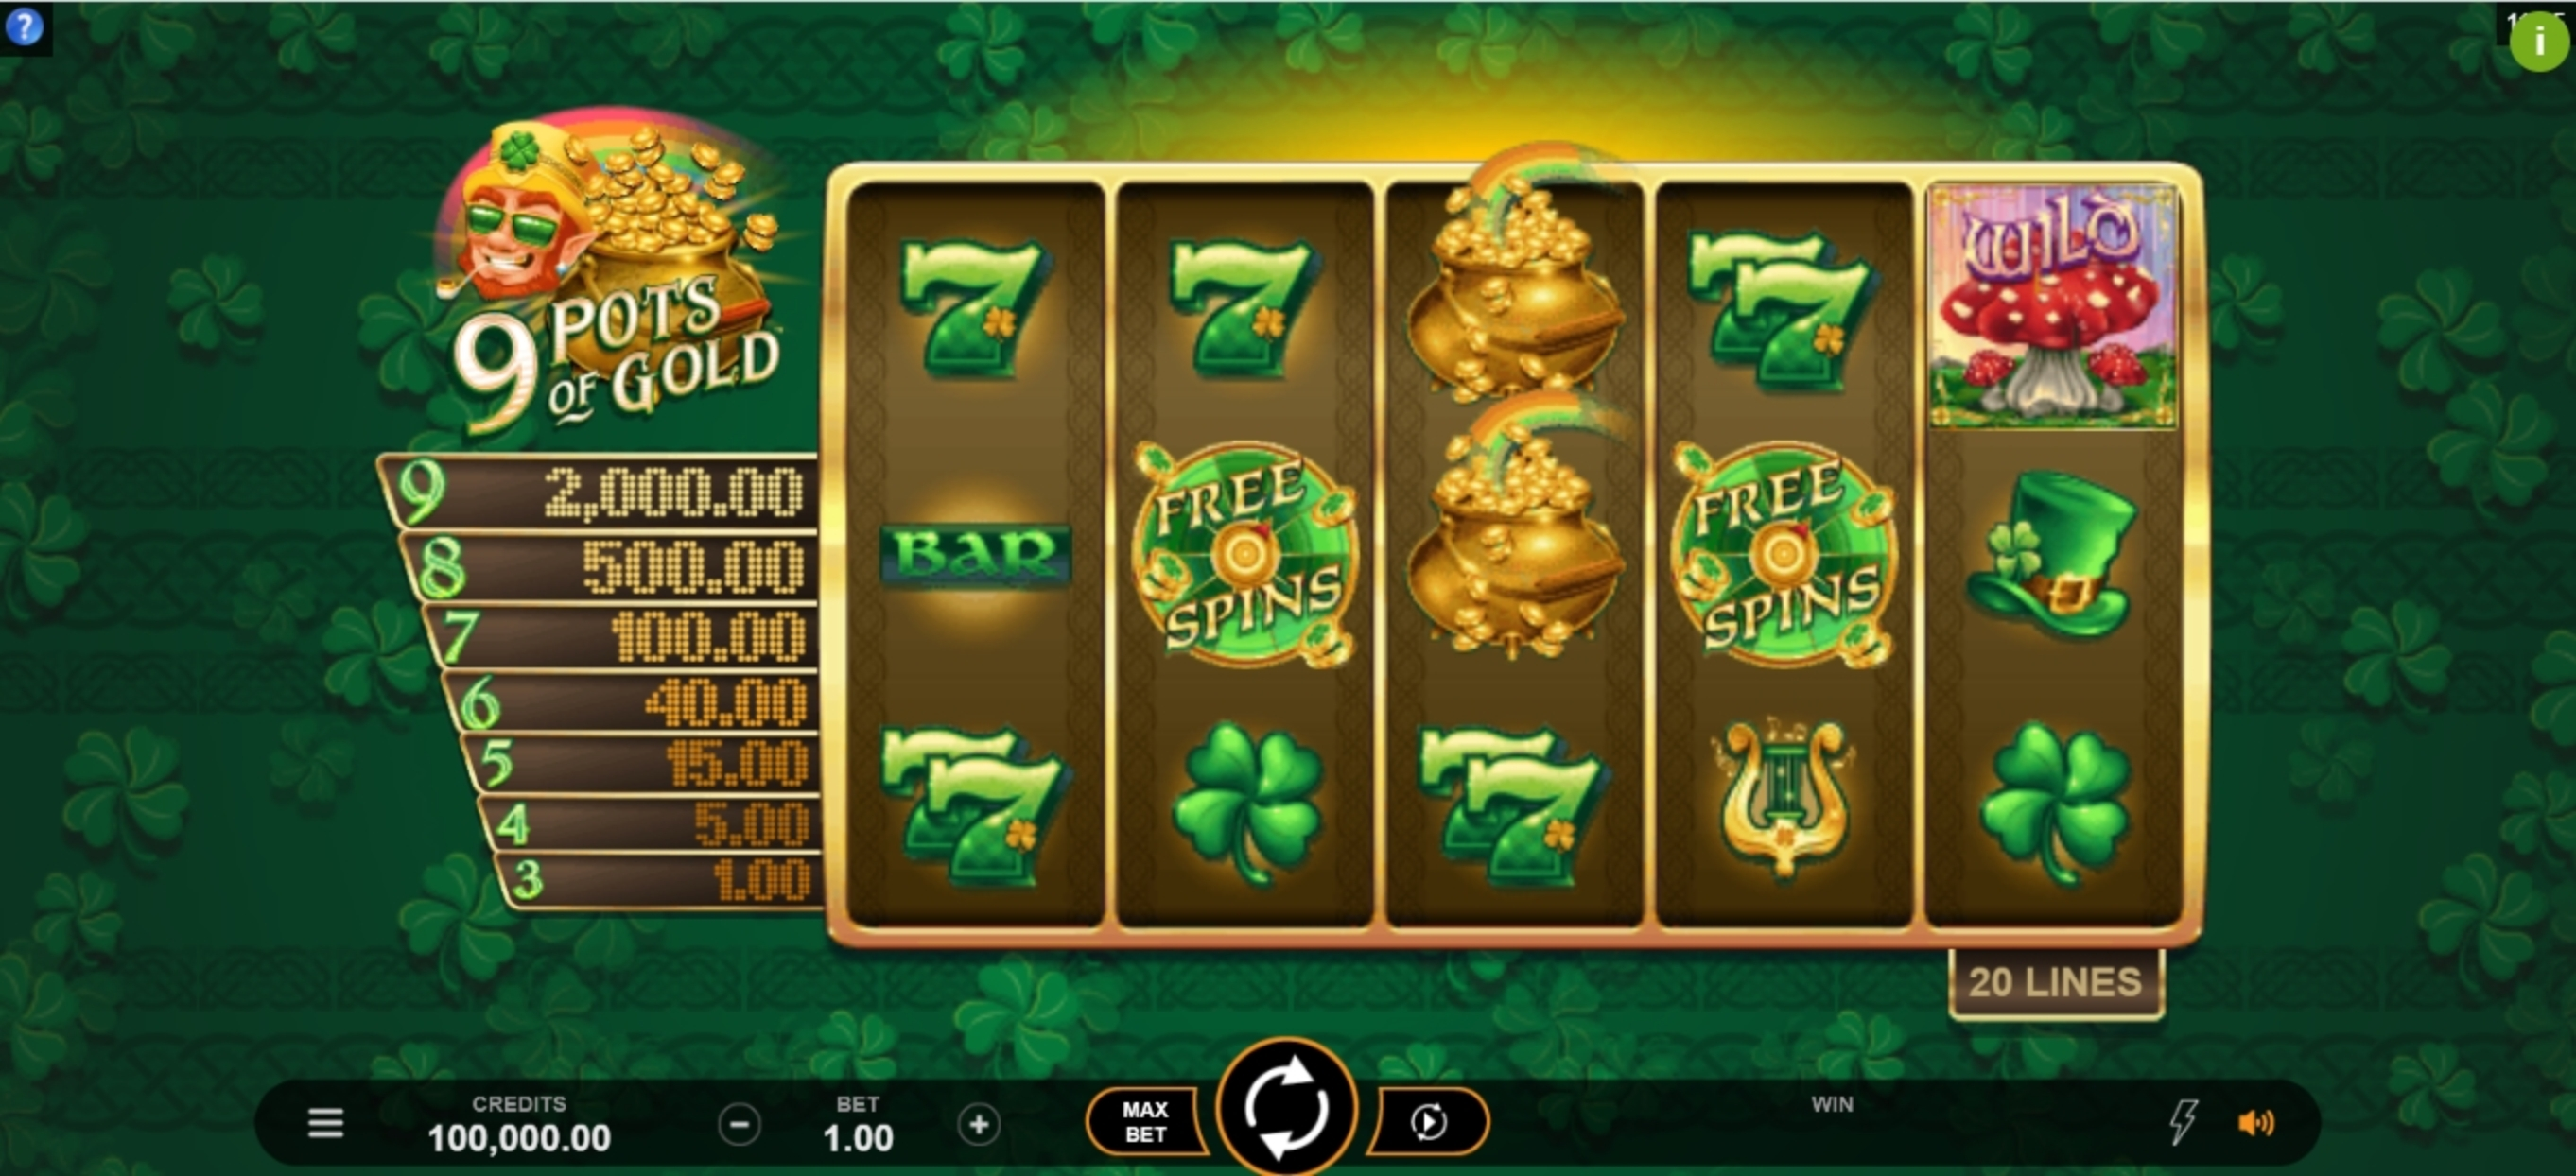 Reels in 9 Pots of Gold Slot Game by Gameburger Studios